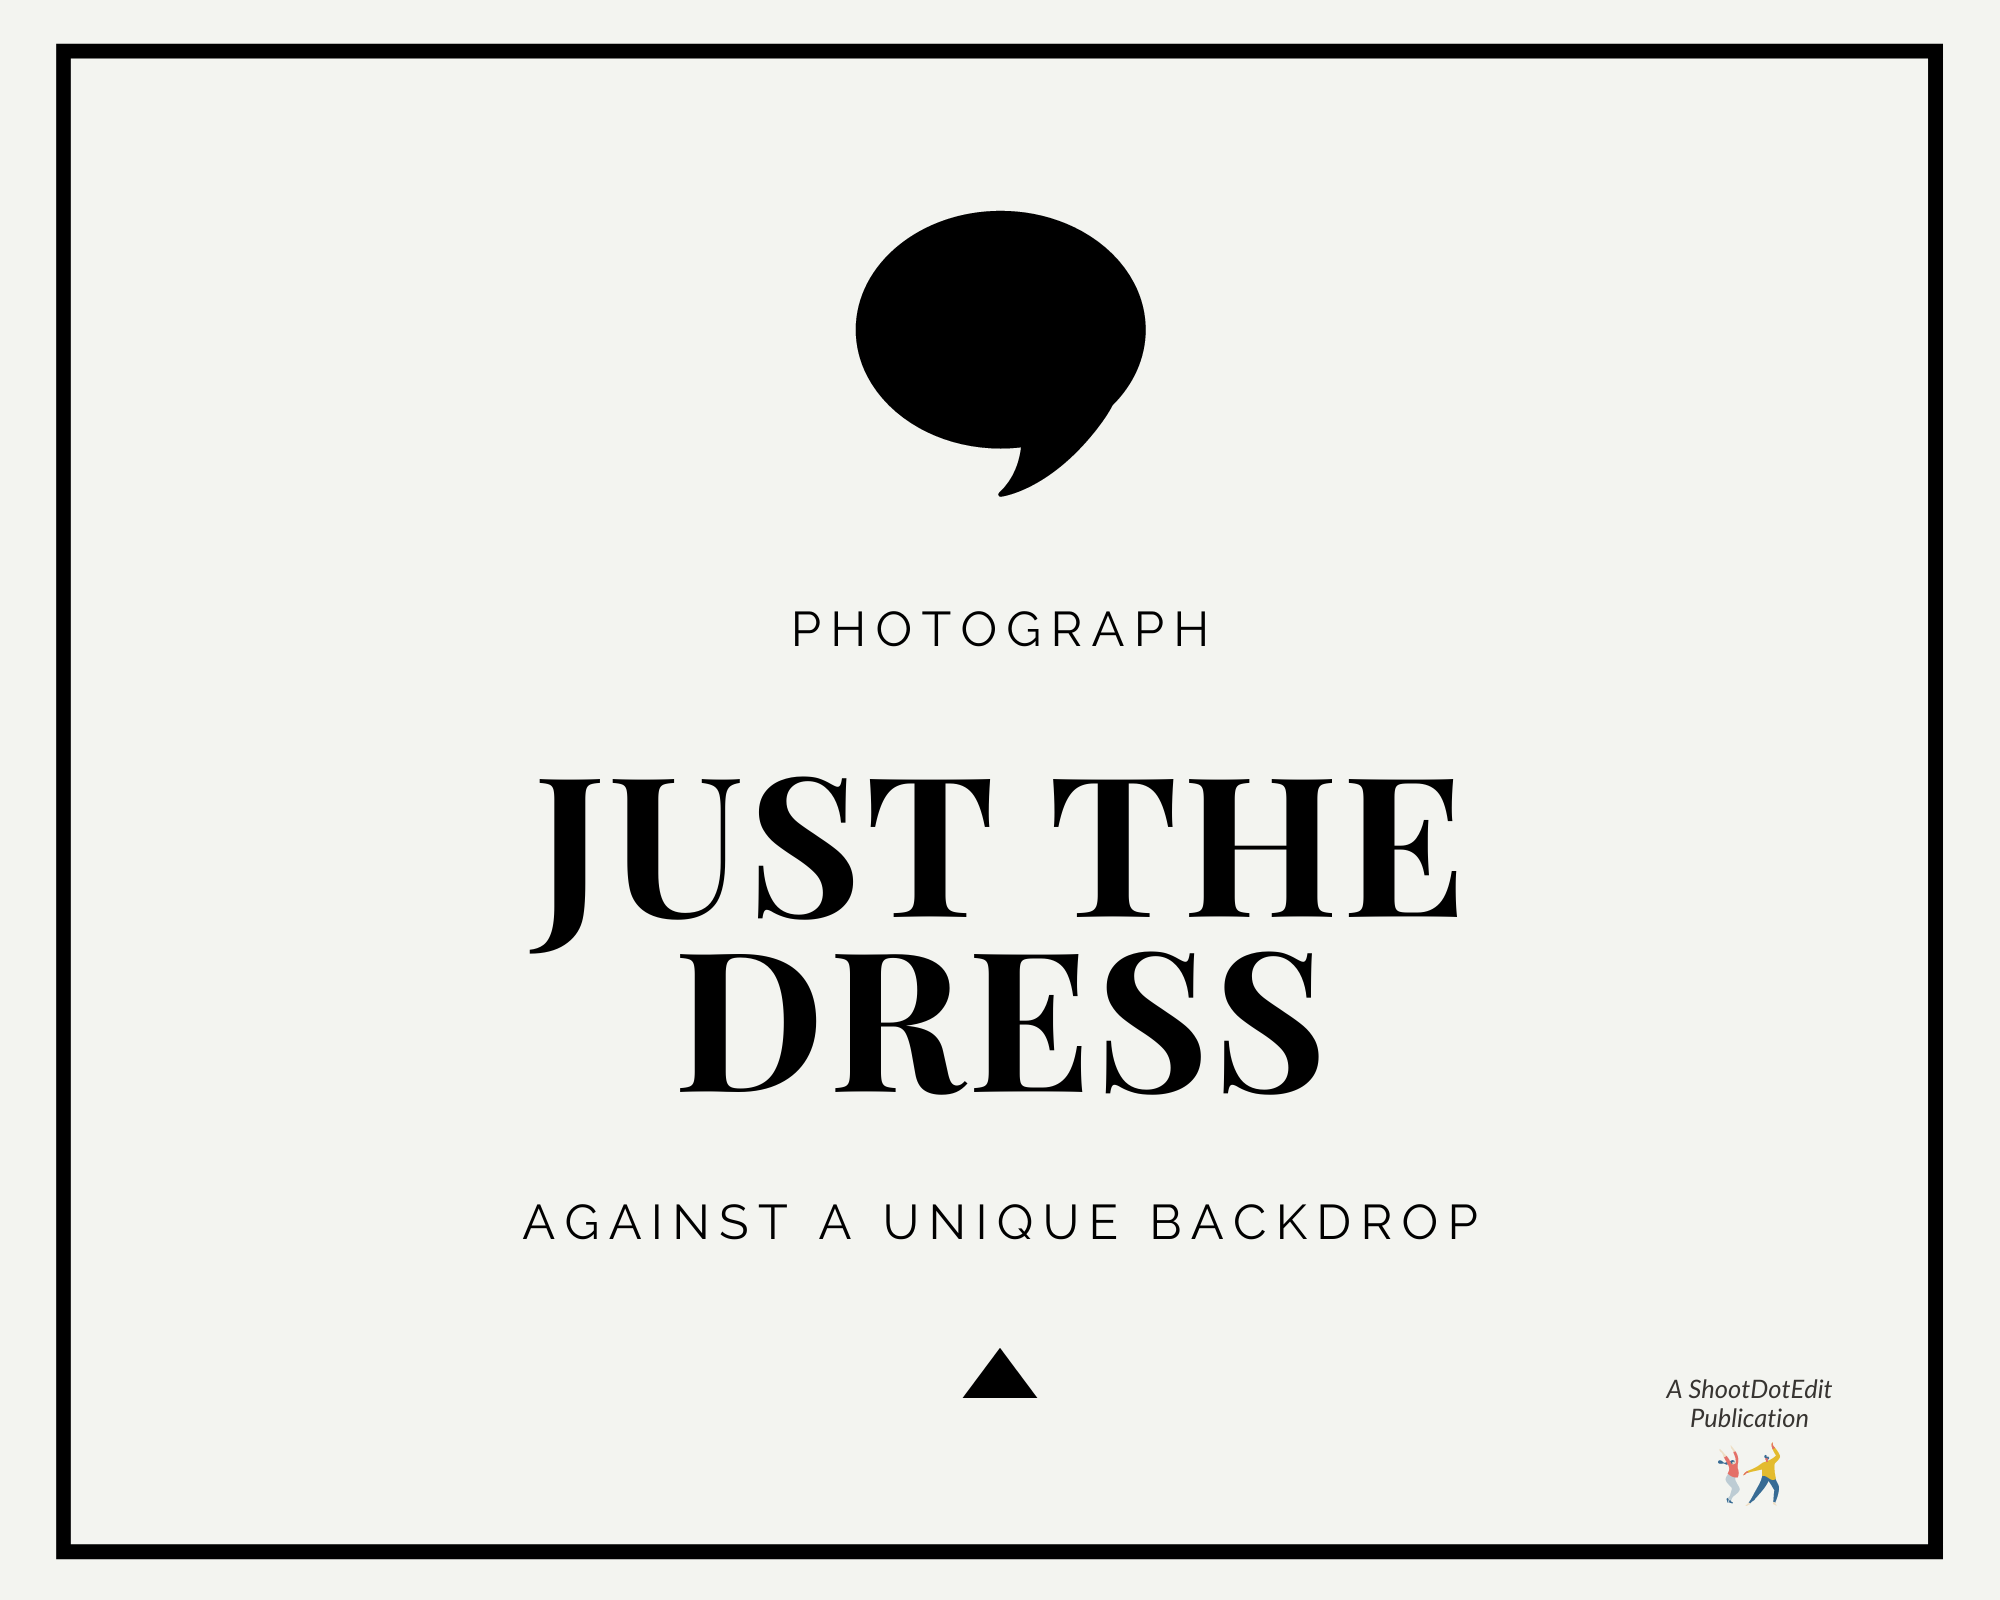 Infographic stating photograph just the dress against a unique backdrop